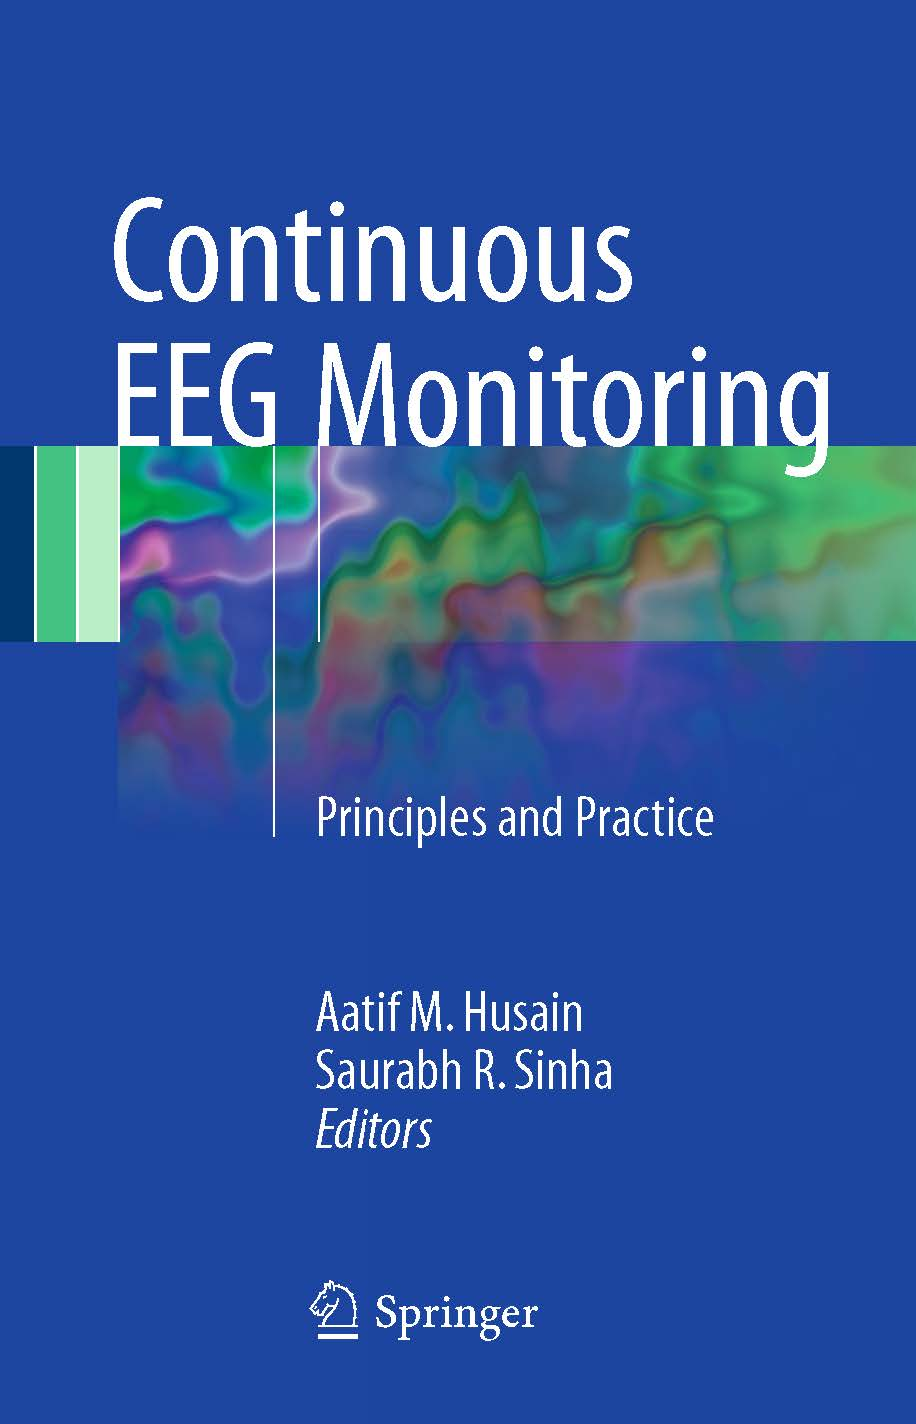 Pages from Aatif M. Husain, Saurabh R. Sinha (eds.)-Continuous EEG Monitoring_ Principles and Practice-Springer International Publishing (2017)